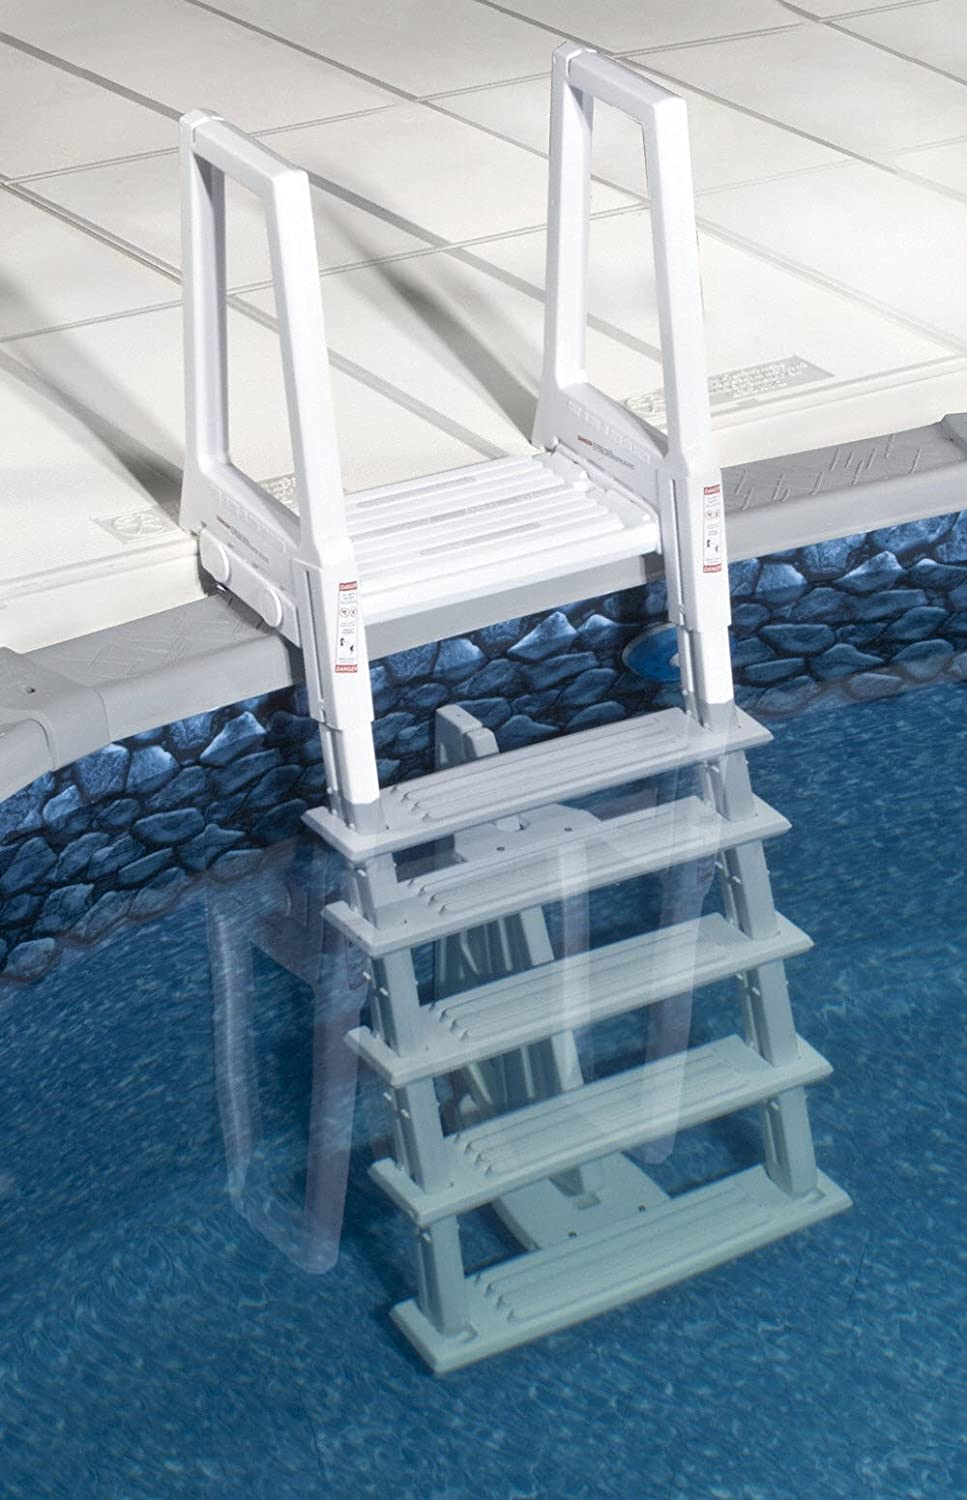 amazoncom 46 56 inch confer above ground swimming pool in pool ladder deluxe pool ladder garden outdoor - Above Ground Pool Steps For Decks